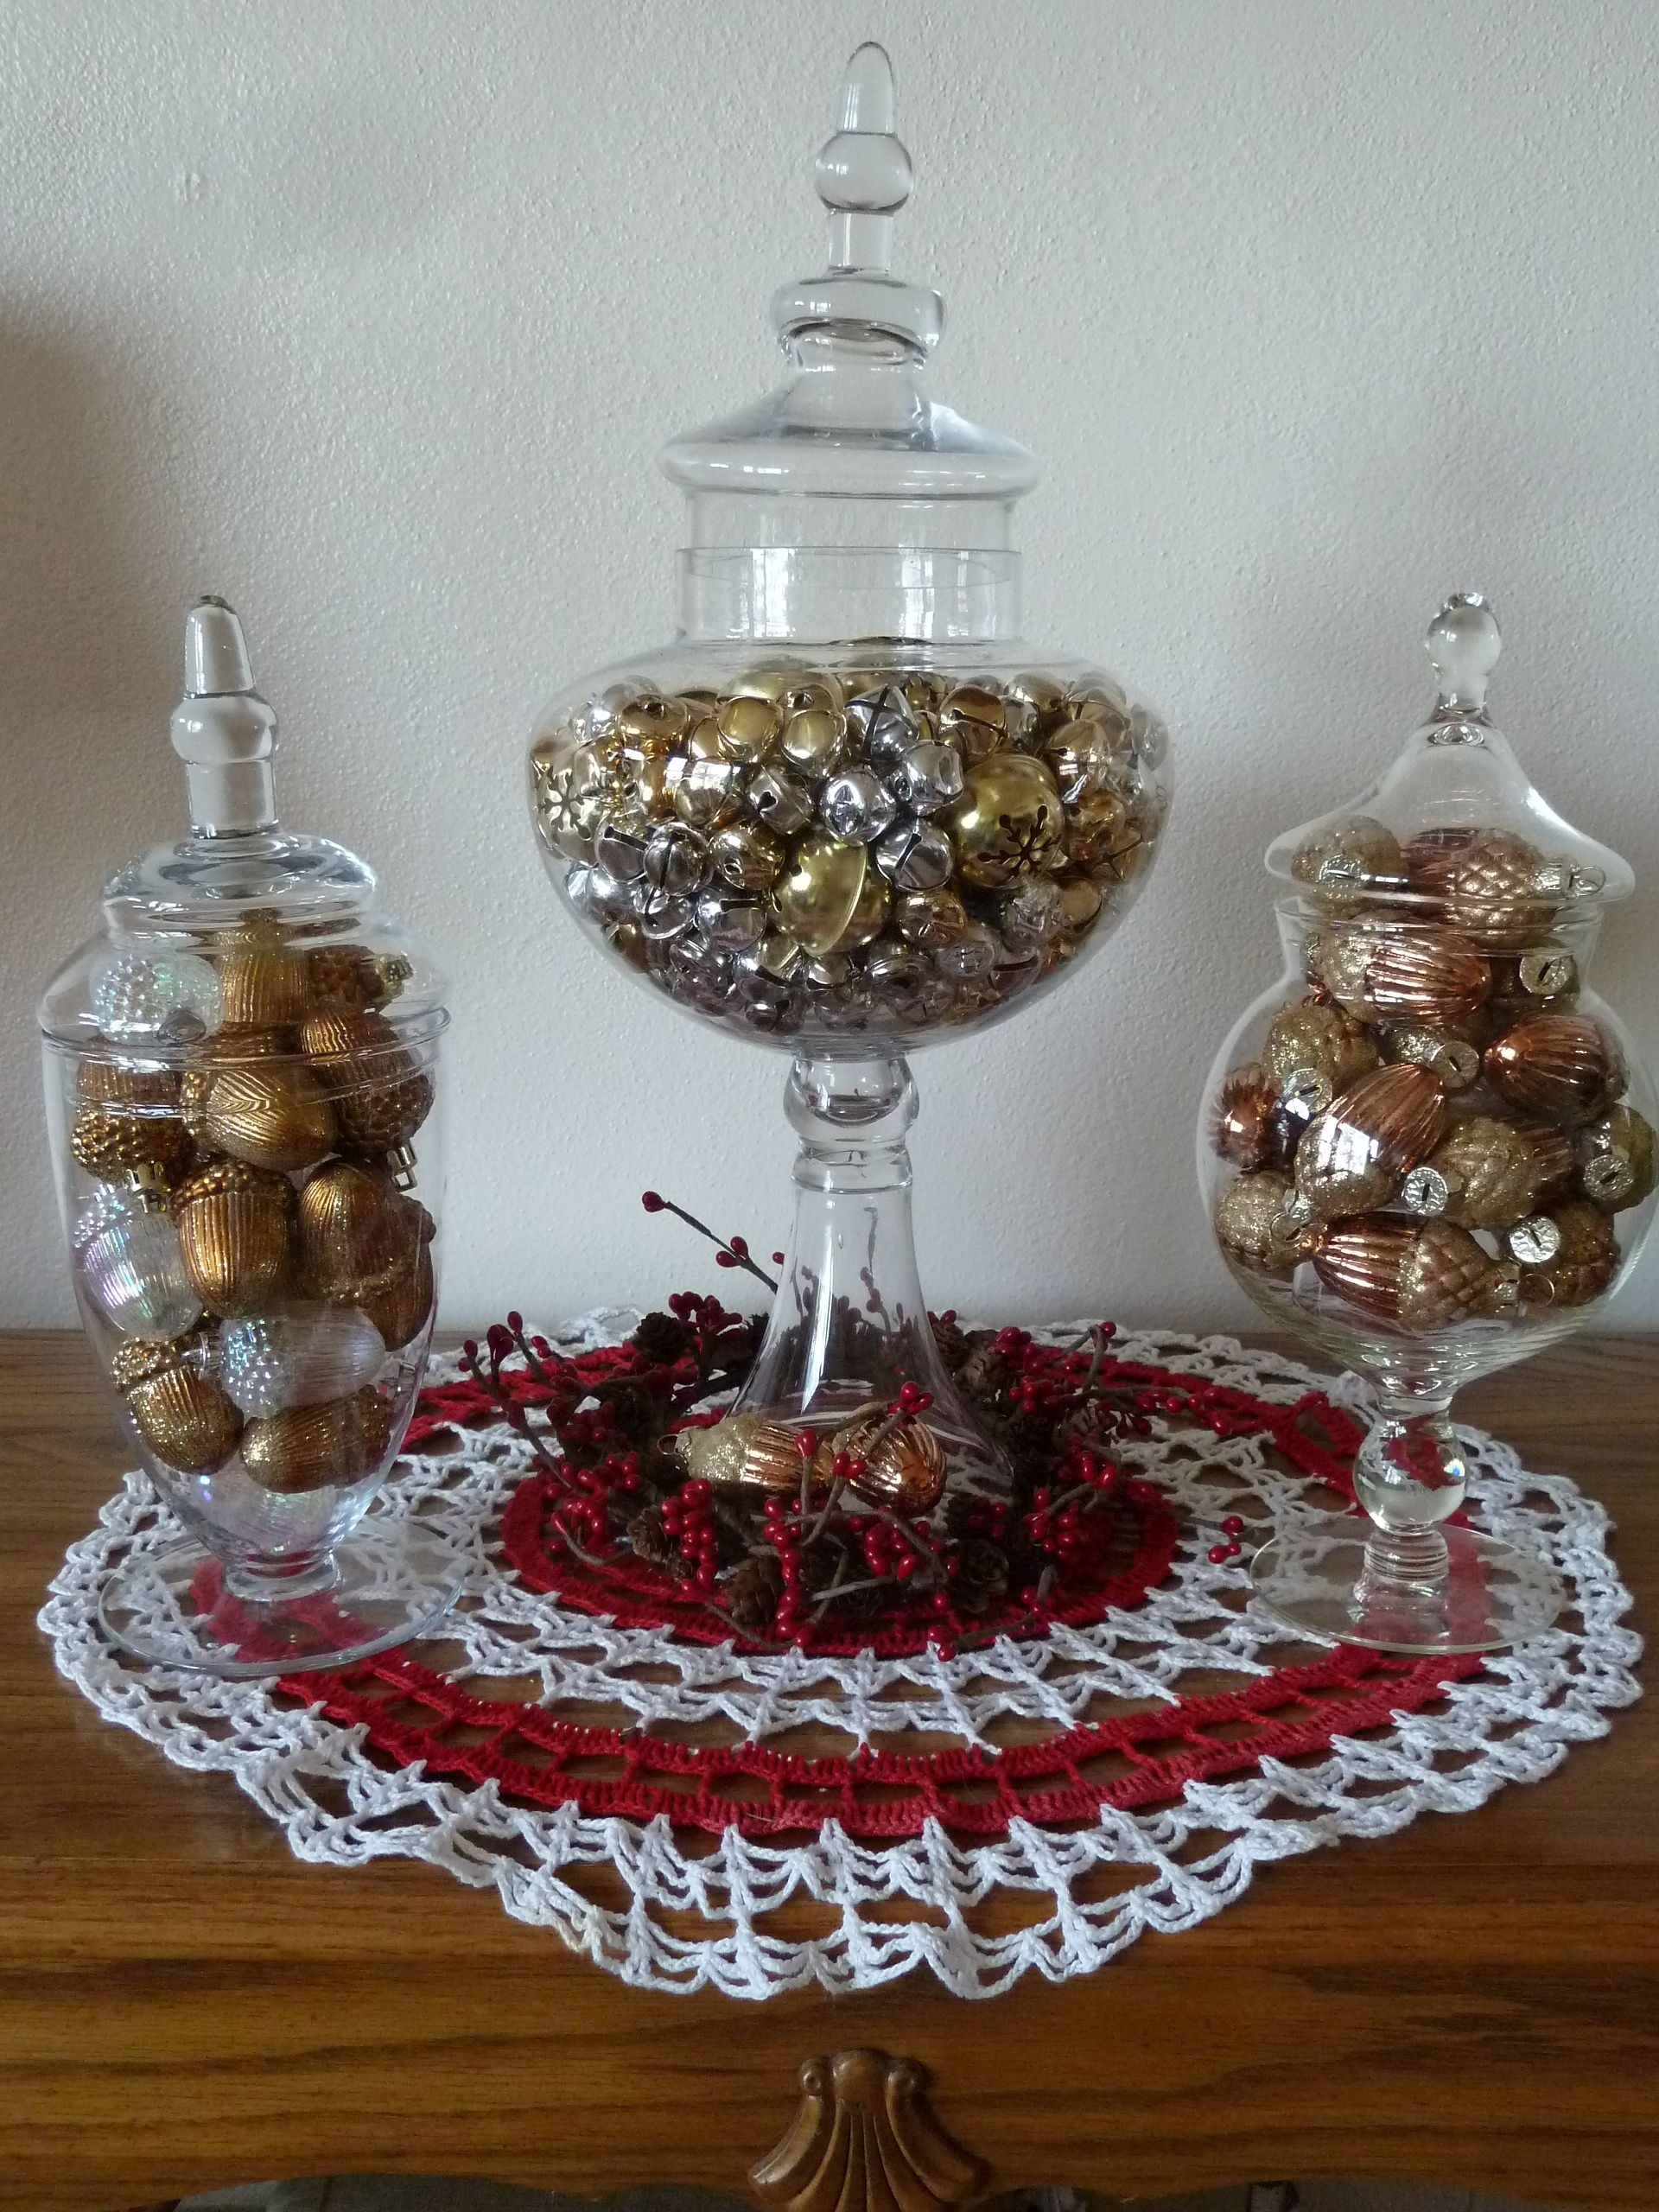 Apocathery Jars Filled With Jingle Bells Amp Acorns